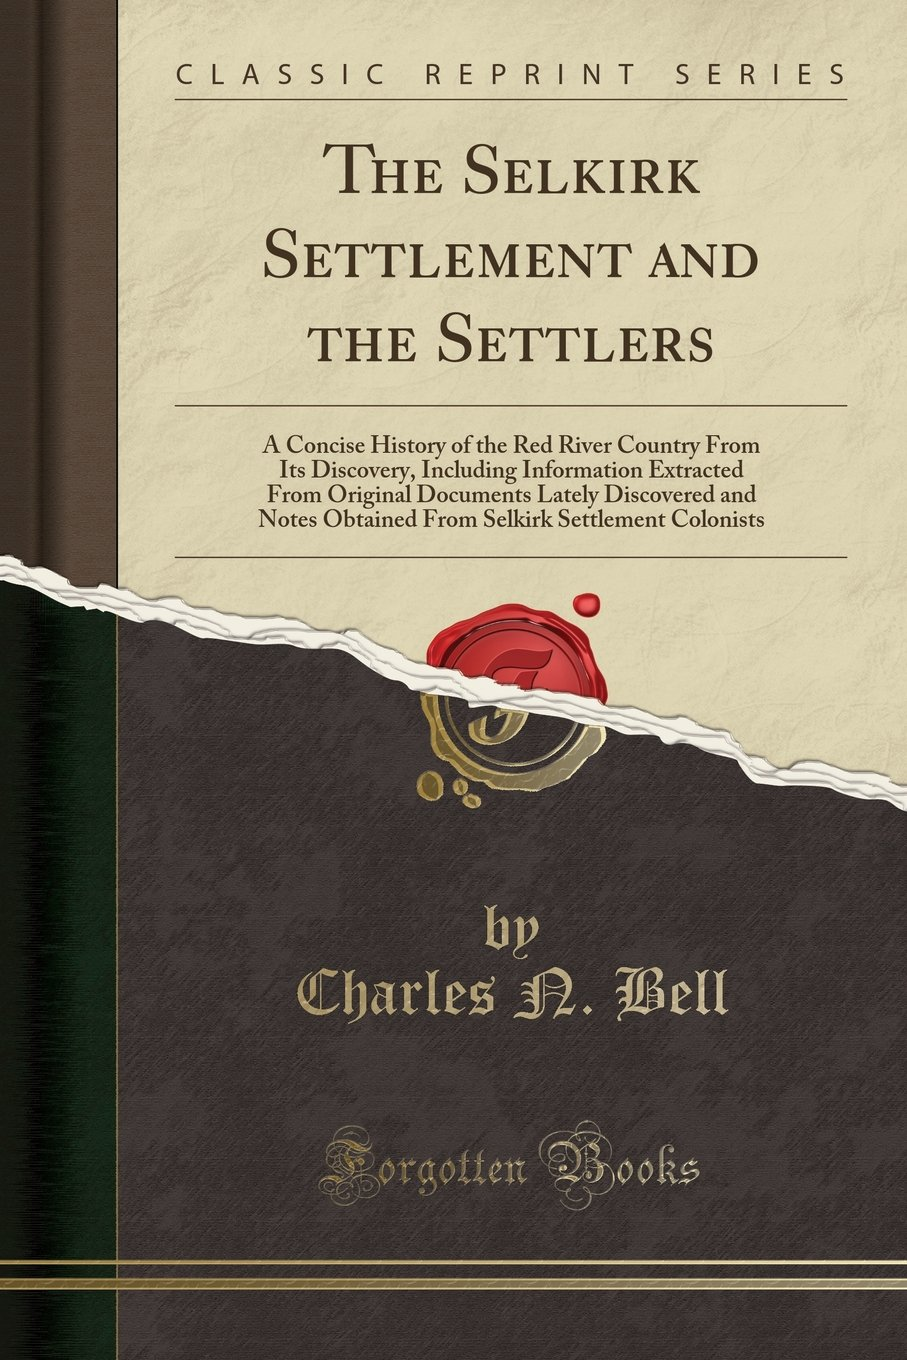 Download The Selkirk Settlement and the Settlers: A Concise History of the Red River Country From Its Discovery, Including Information Extracted From Original ... Settlement Colonists (Classic Reprint) pdf epub